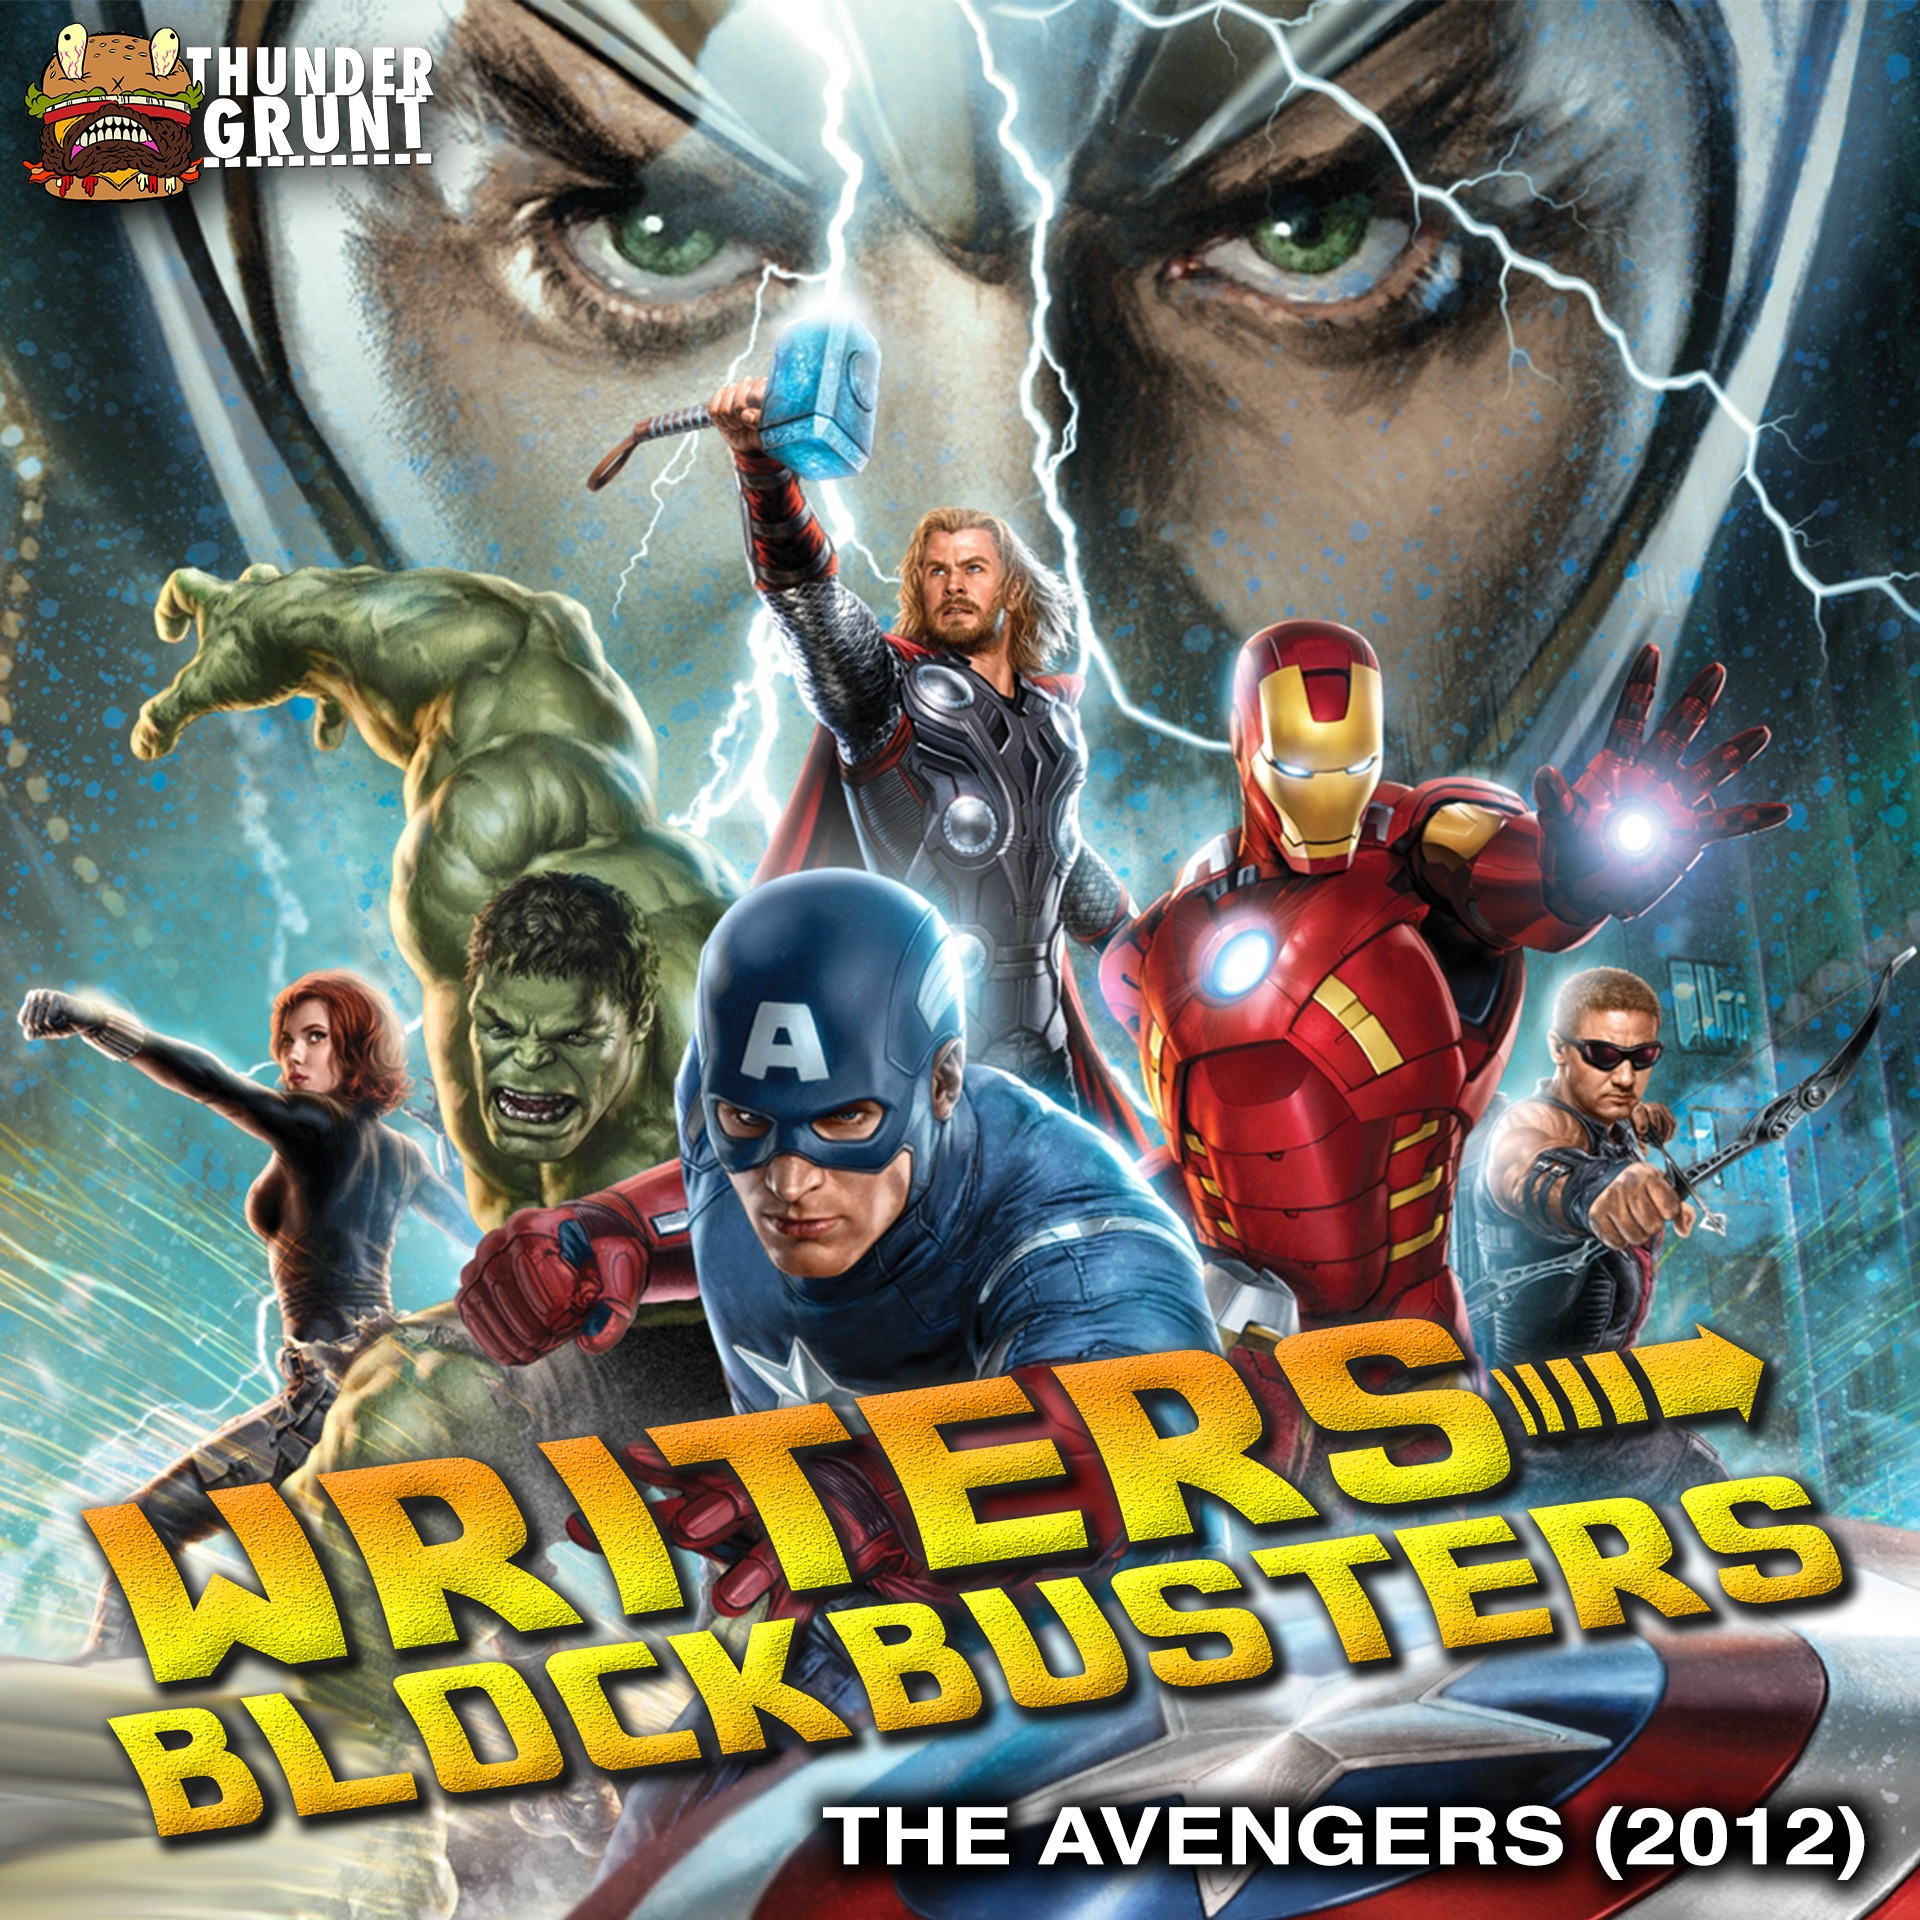 WRITERS/BLOCKBUSTERS 005 | THE AVENGERS (2012)